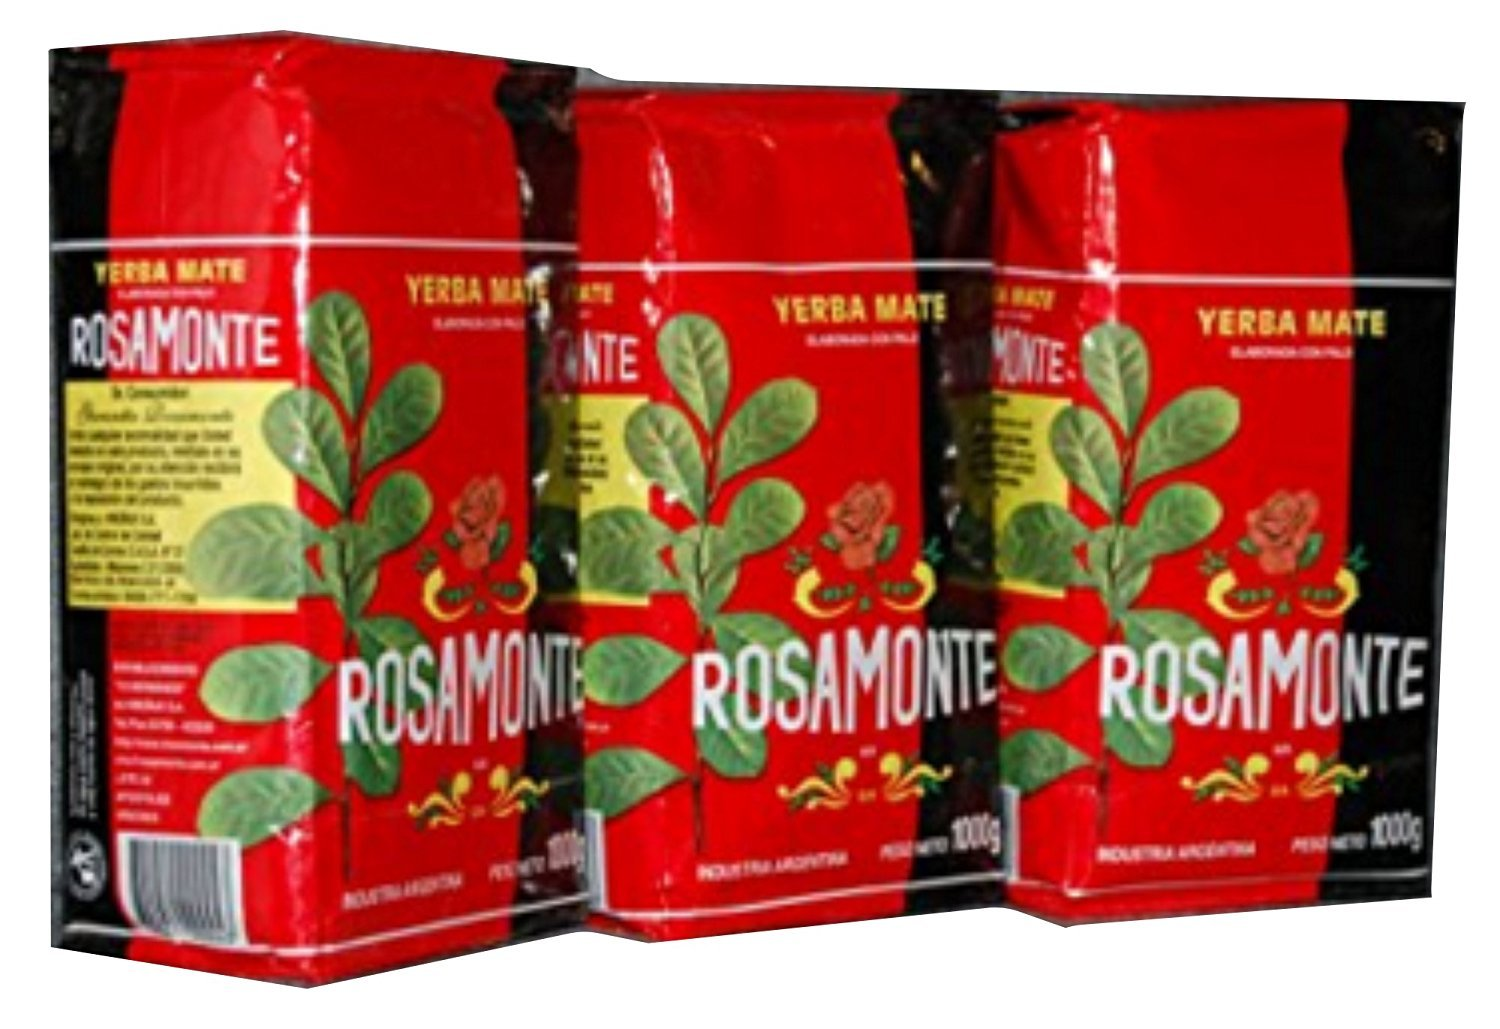 Yerba Mate Rosamonte 3 KG Argentina Green Tea Loose Leaf Bag Herbal 6.6 lb Fresh